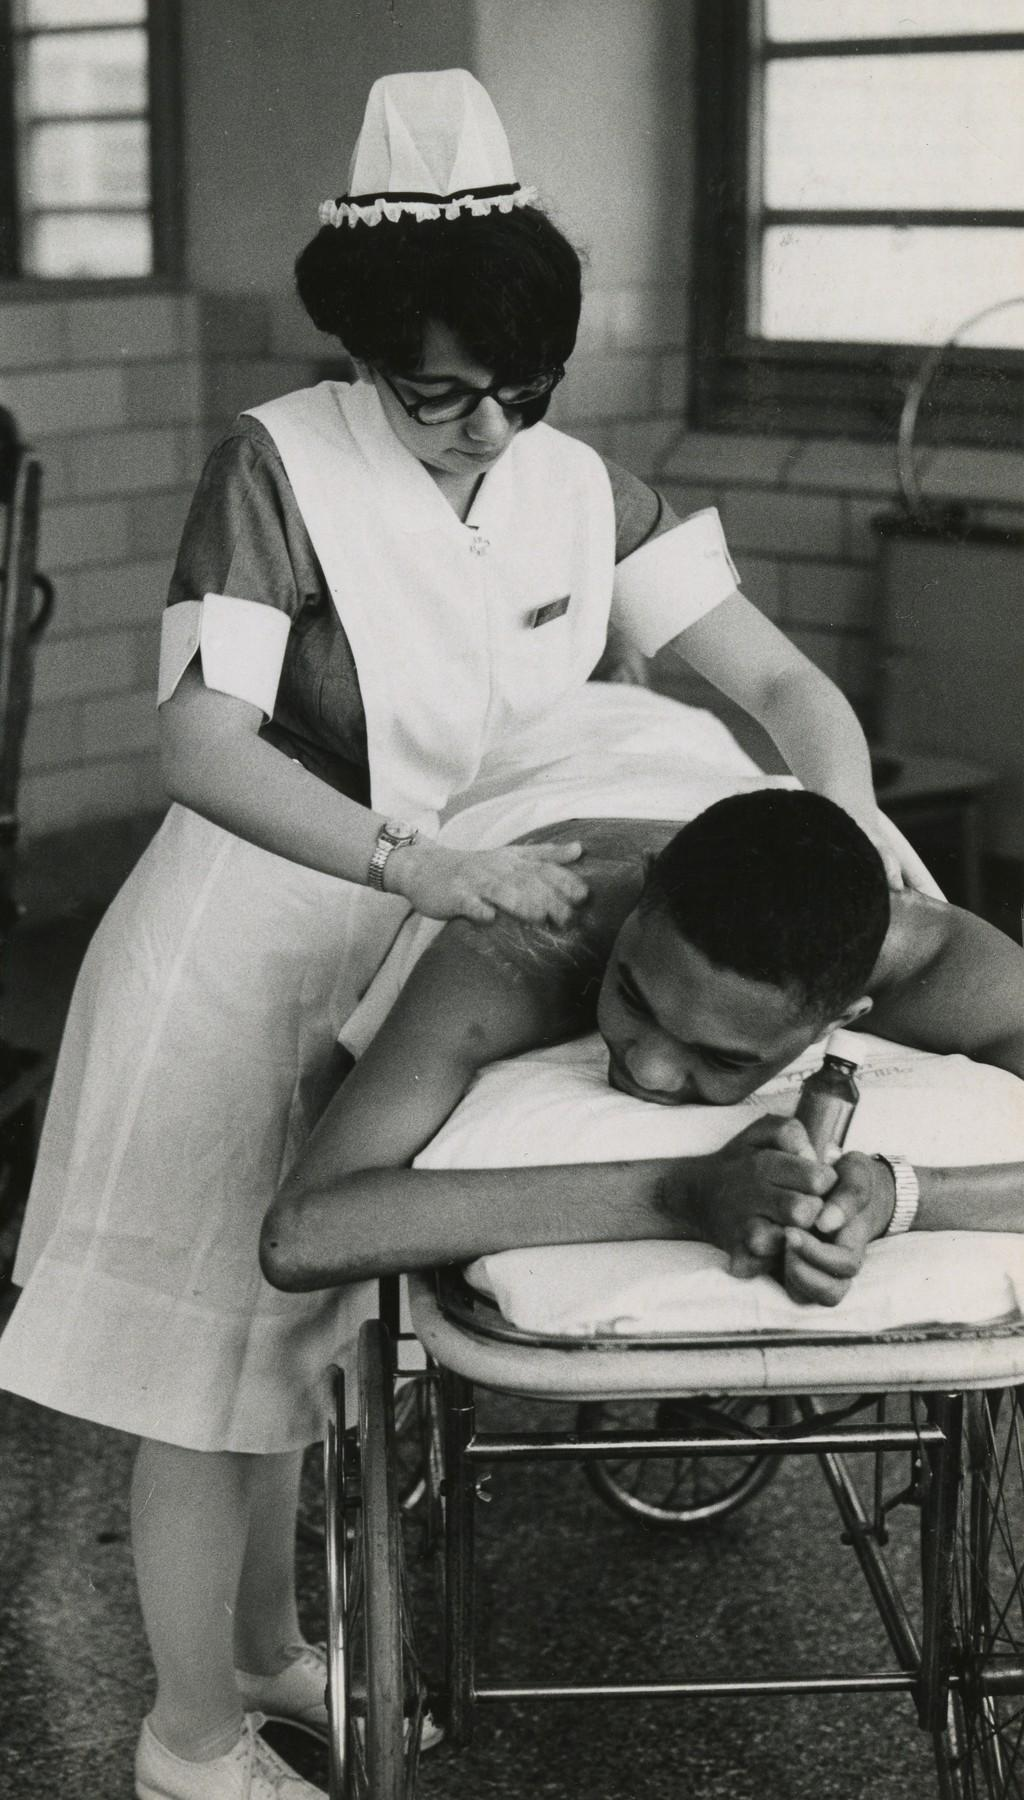 A student nurse tends to a patient, c. 1954